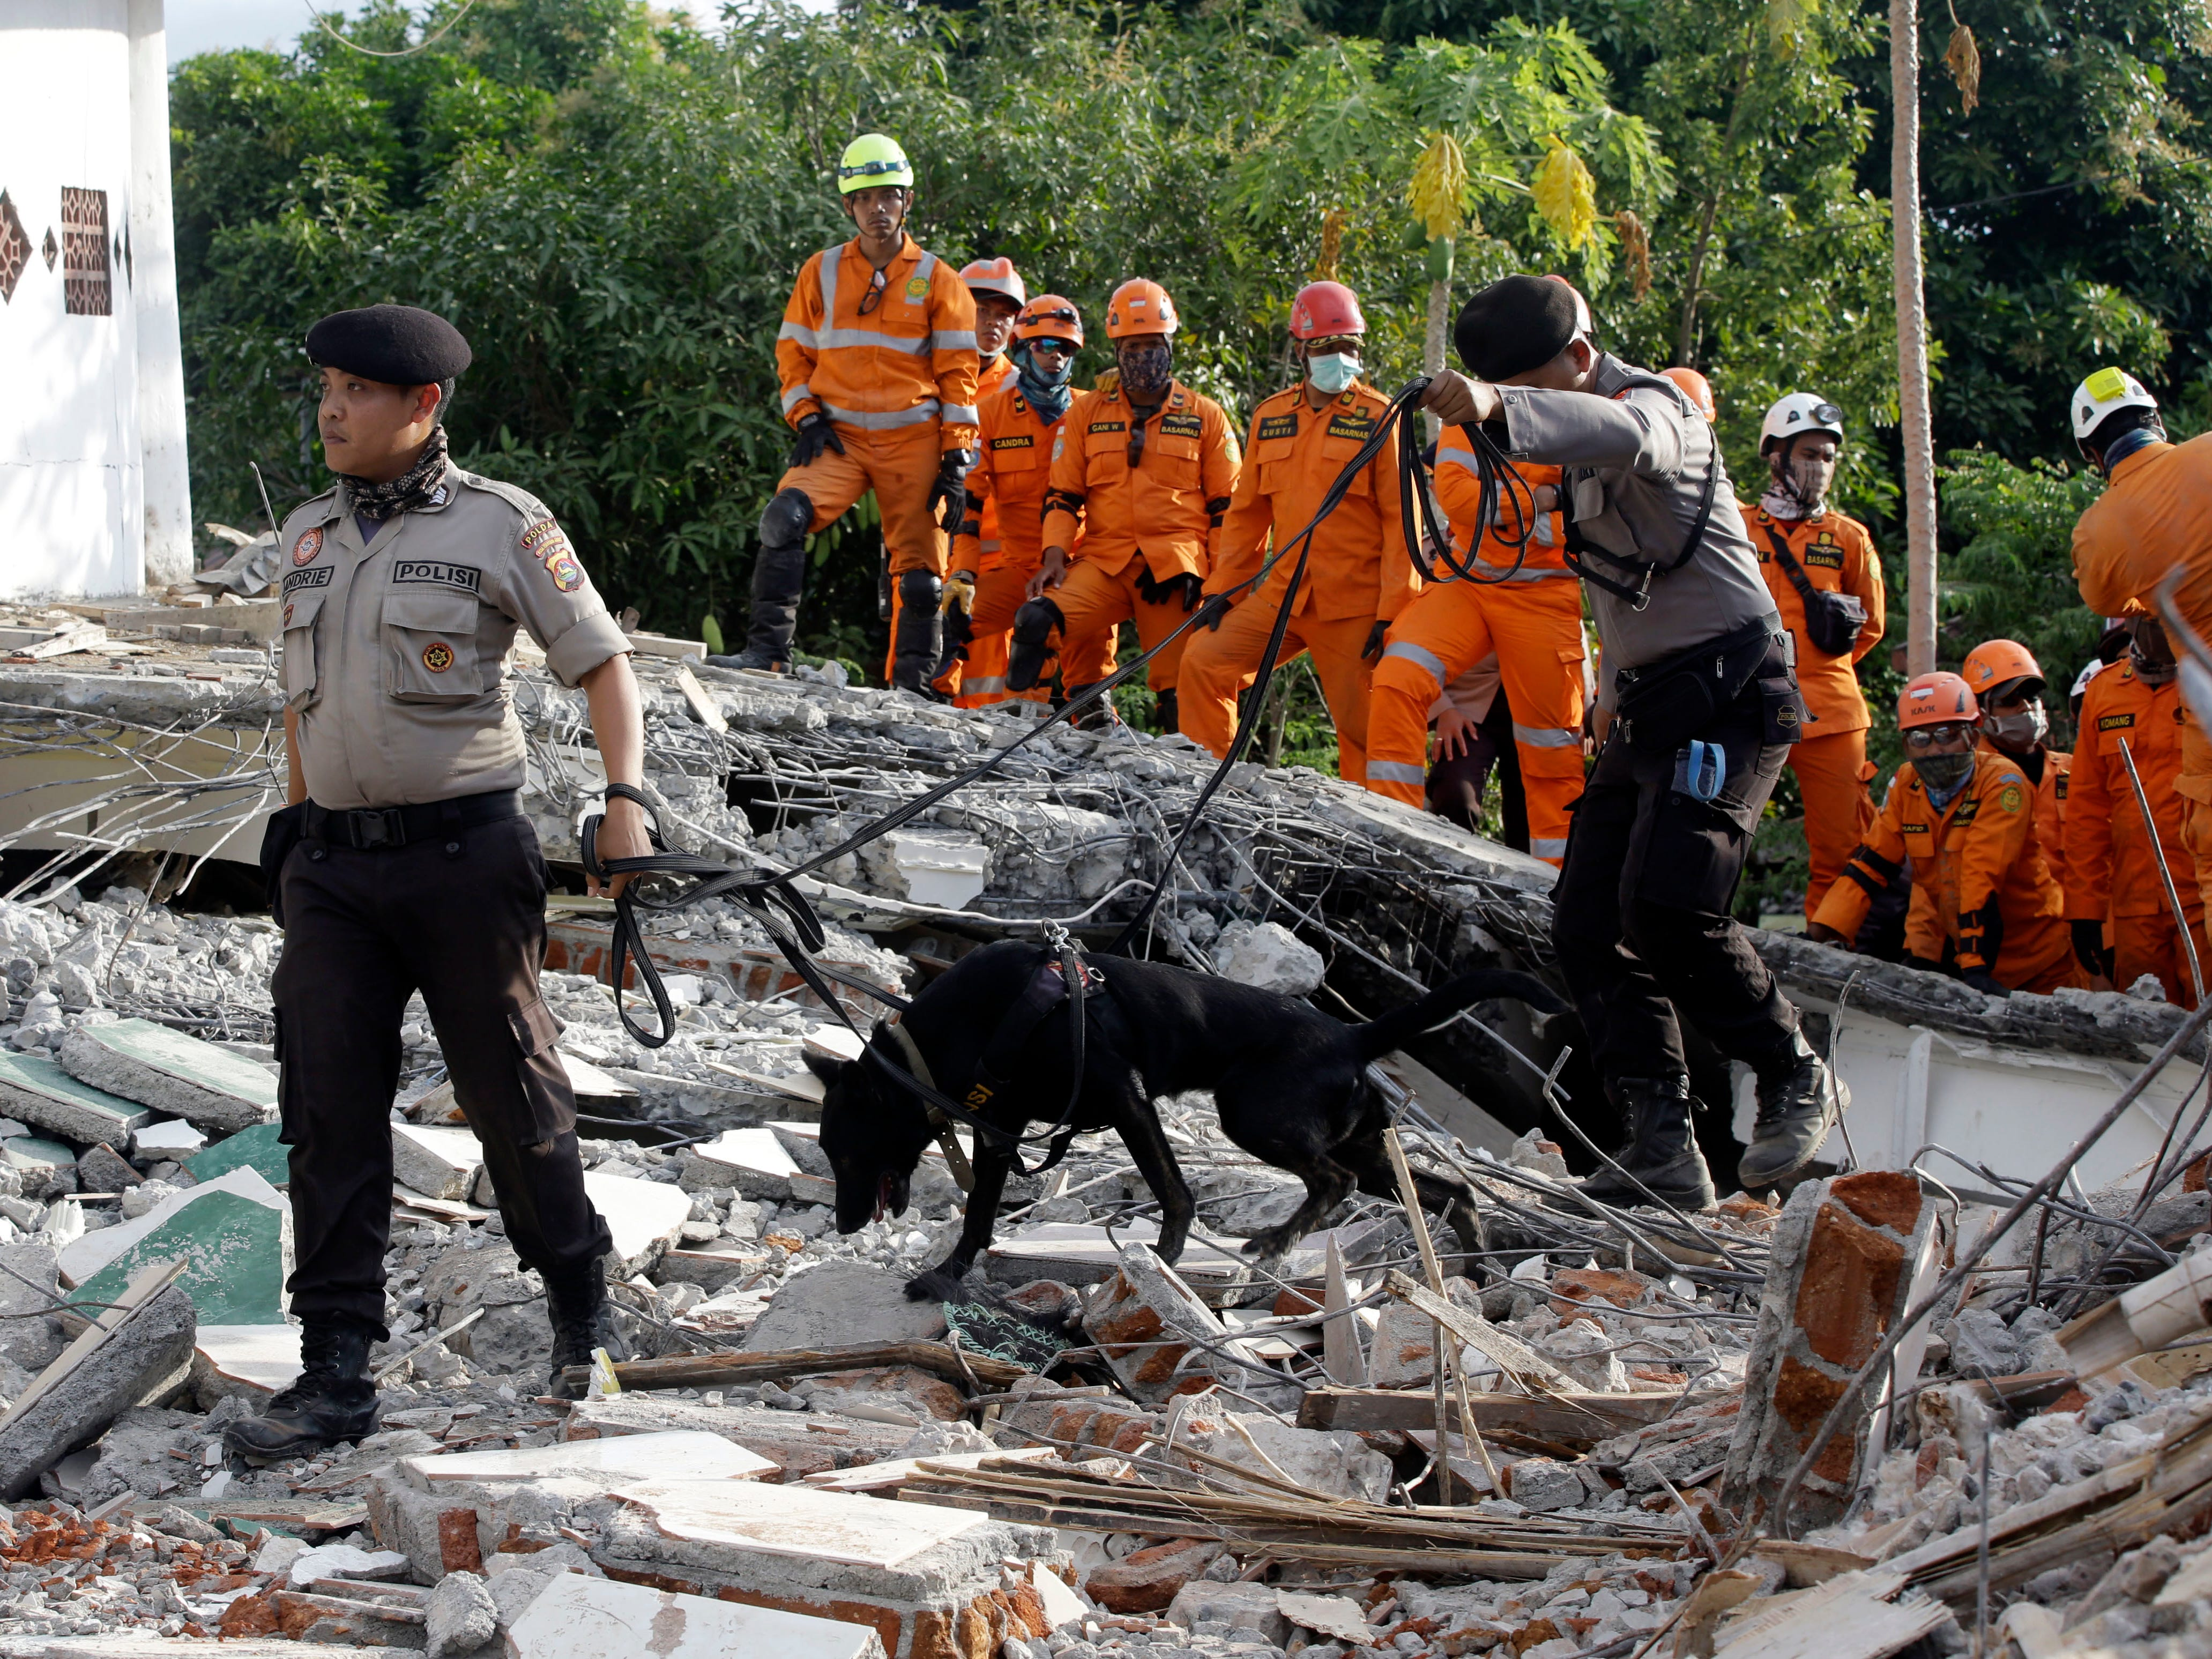 Rescuers with sniffer dogs search for victims at a mosque damaged by an earthquake in North Lombok, Indonesia, Tuesday, Aug. 7, 2018. Thousands of people left homeless sheltered Monday night in makeshift tents following a powerful quake that ruptured roads and flattened buildings on the Indonesian tourist island of Lombok, as authorities said rescuers hadn't yet reached all devastated areas.